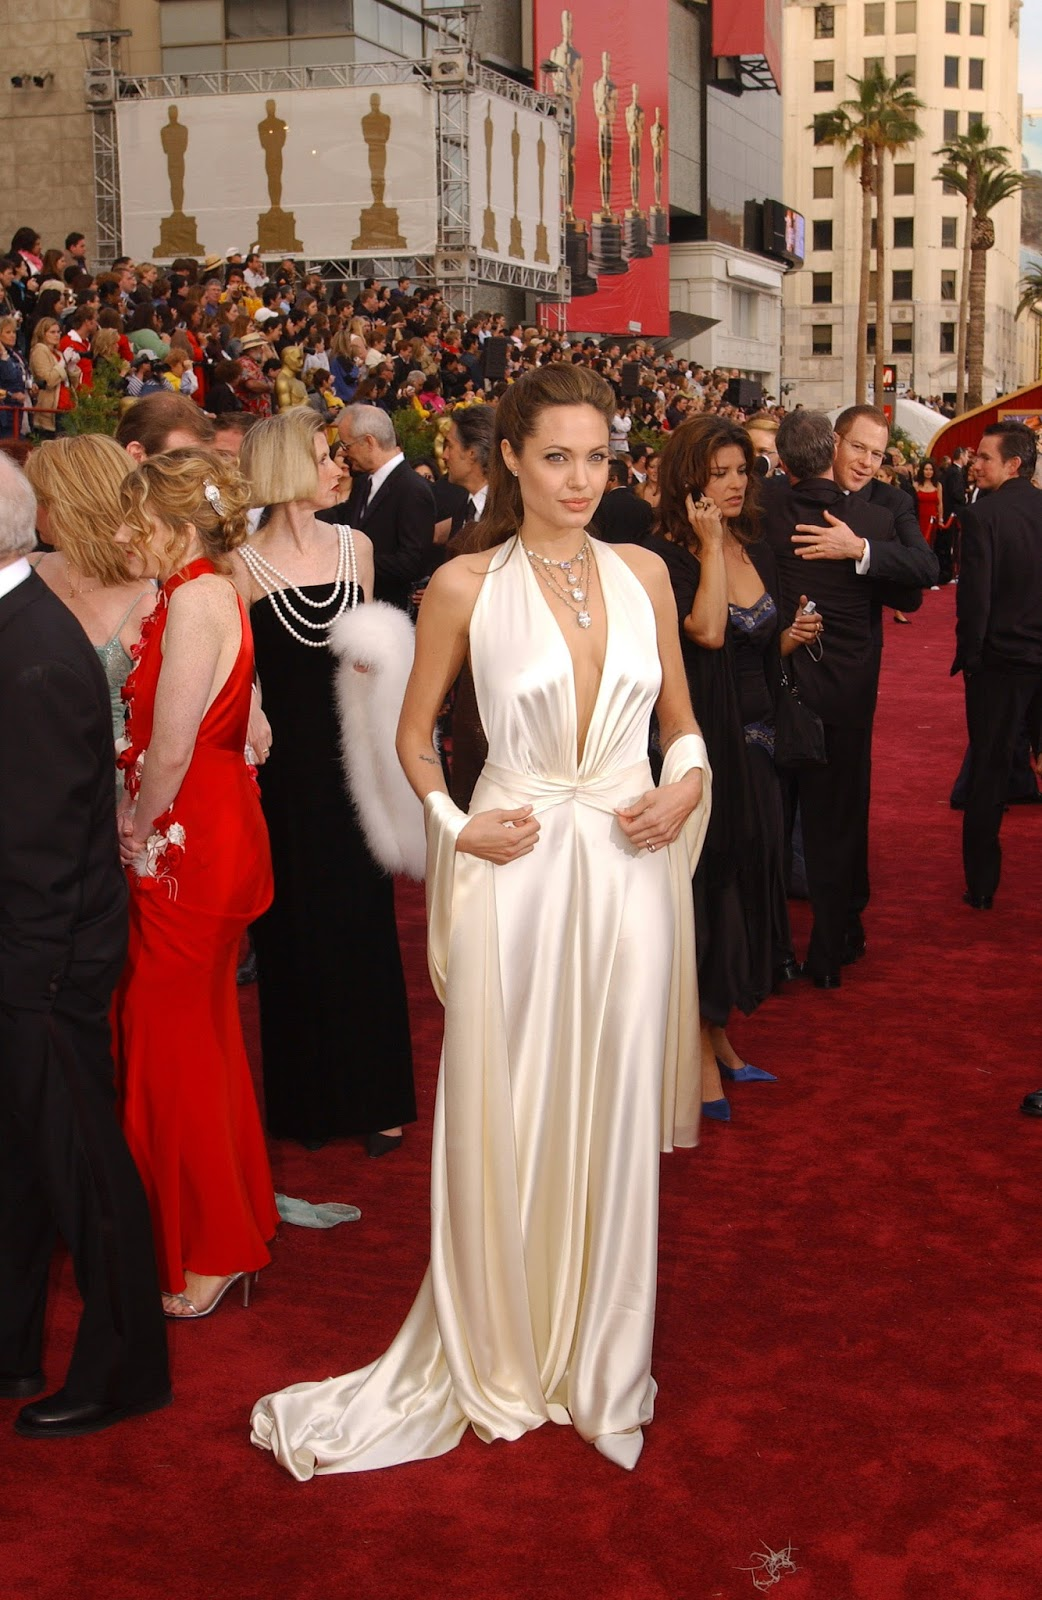 Image Gallery: Angelina Jolie Red Carpet